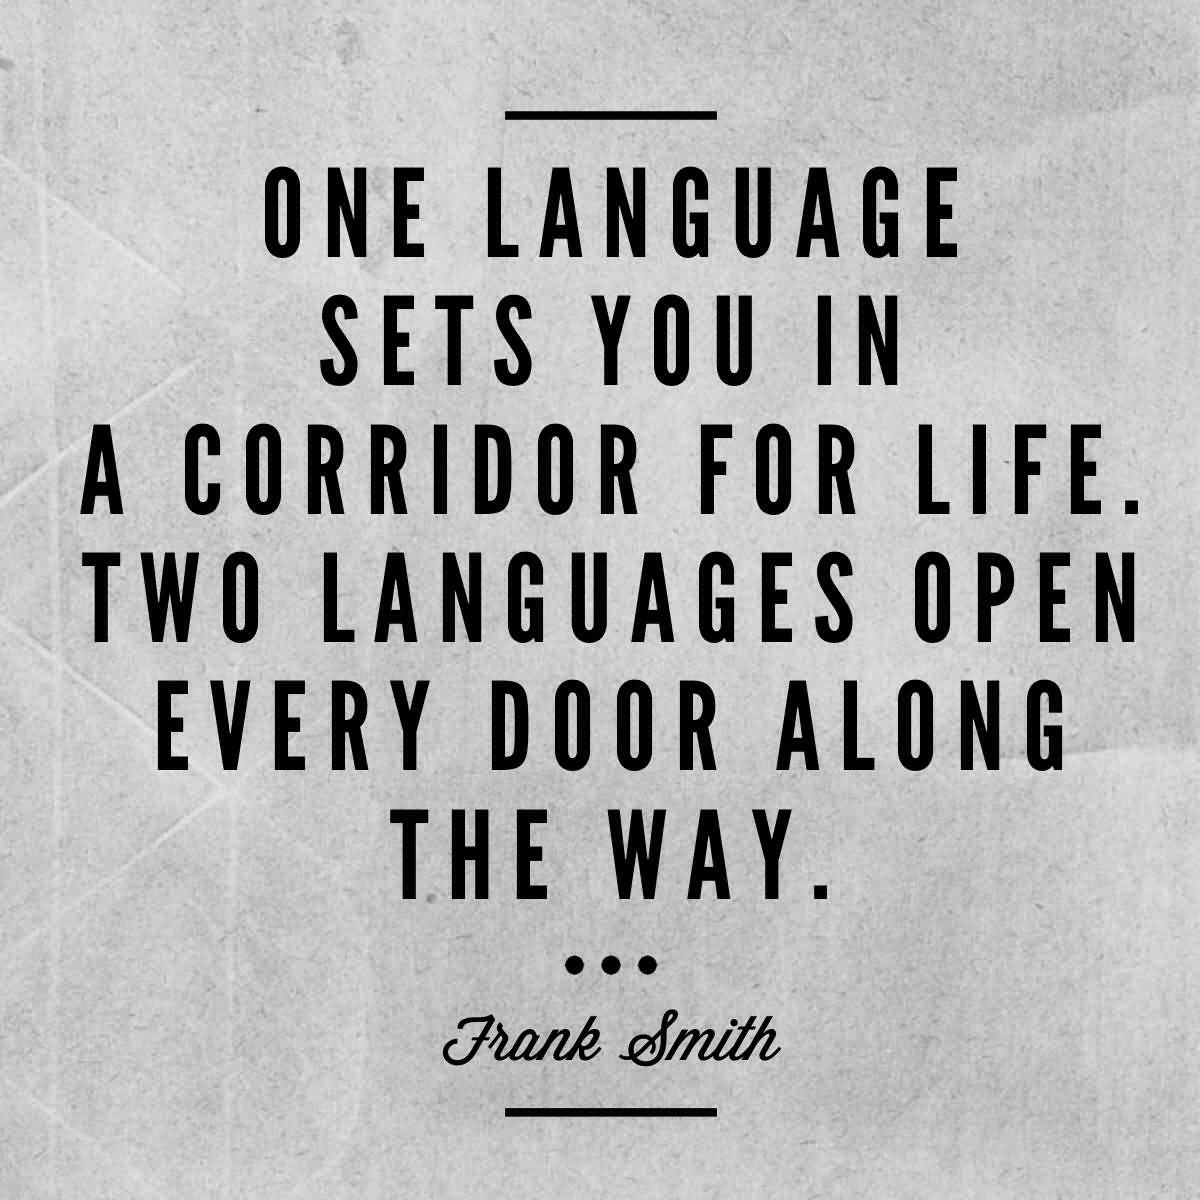 Caroline Butler On Twitter One Language Sets You In A Corridor